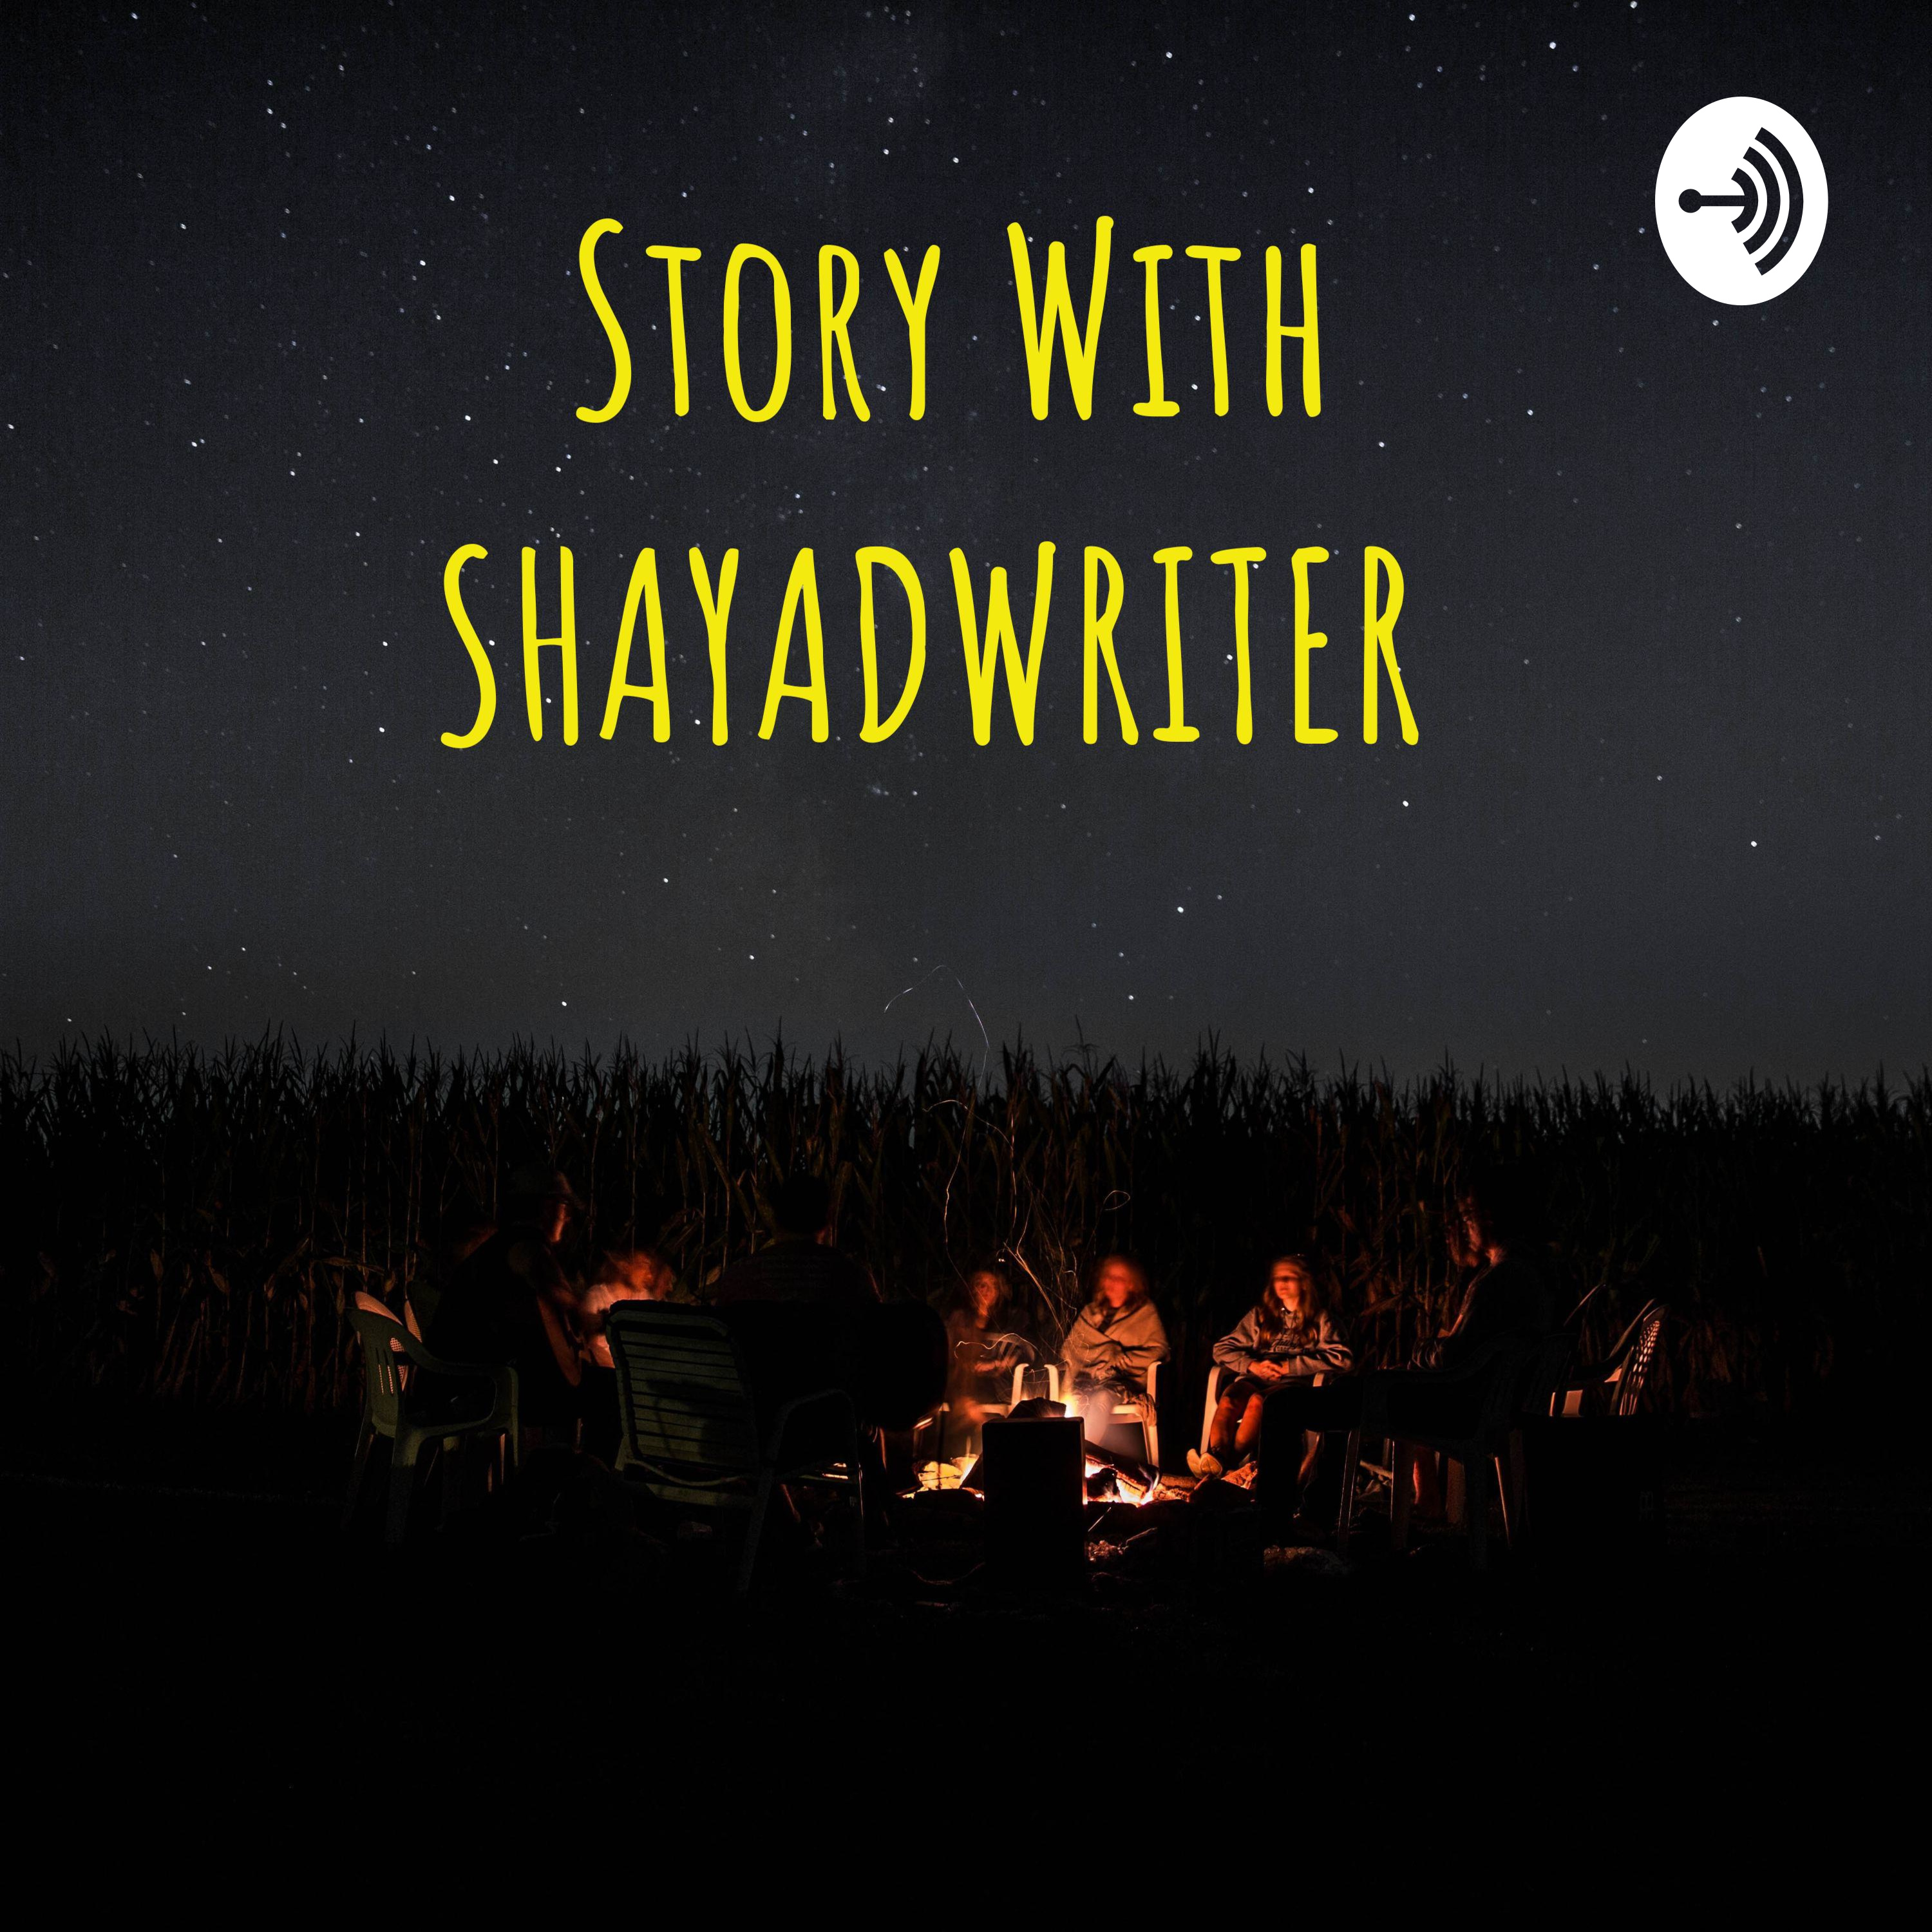 Safar - A storytelling by Shayadwriter...